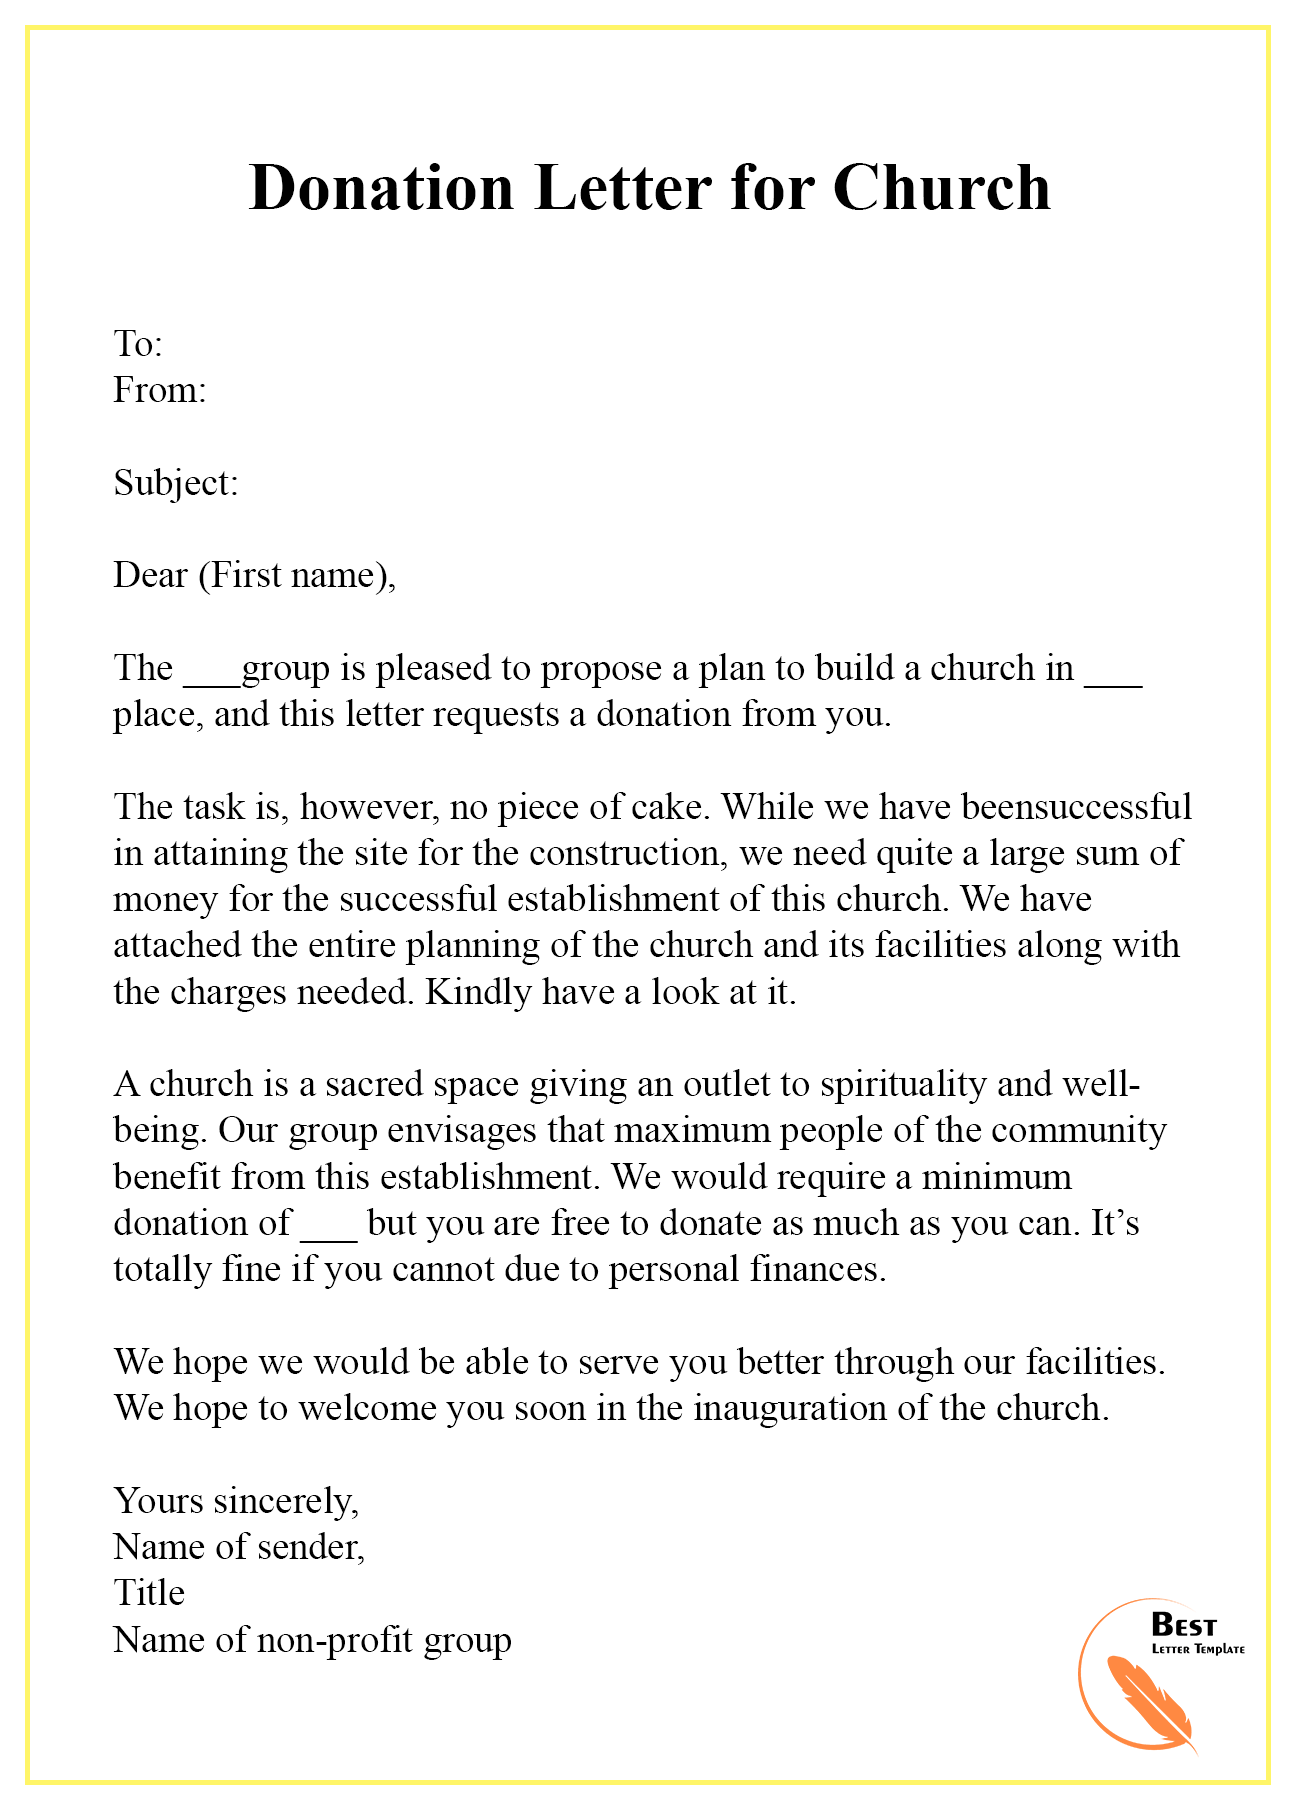 Donation Letter For Church